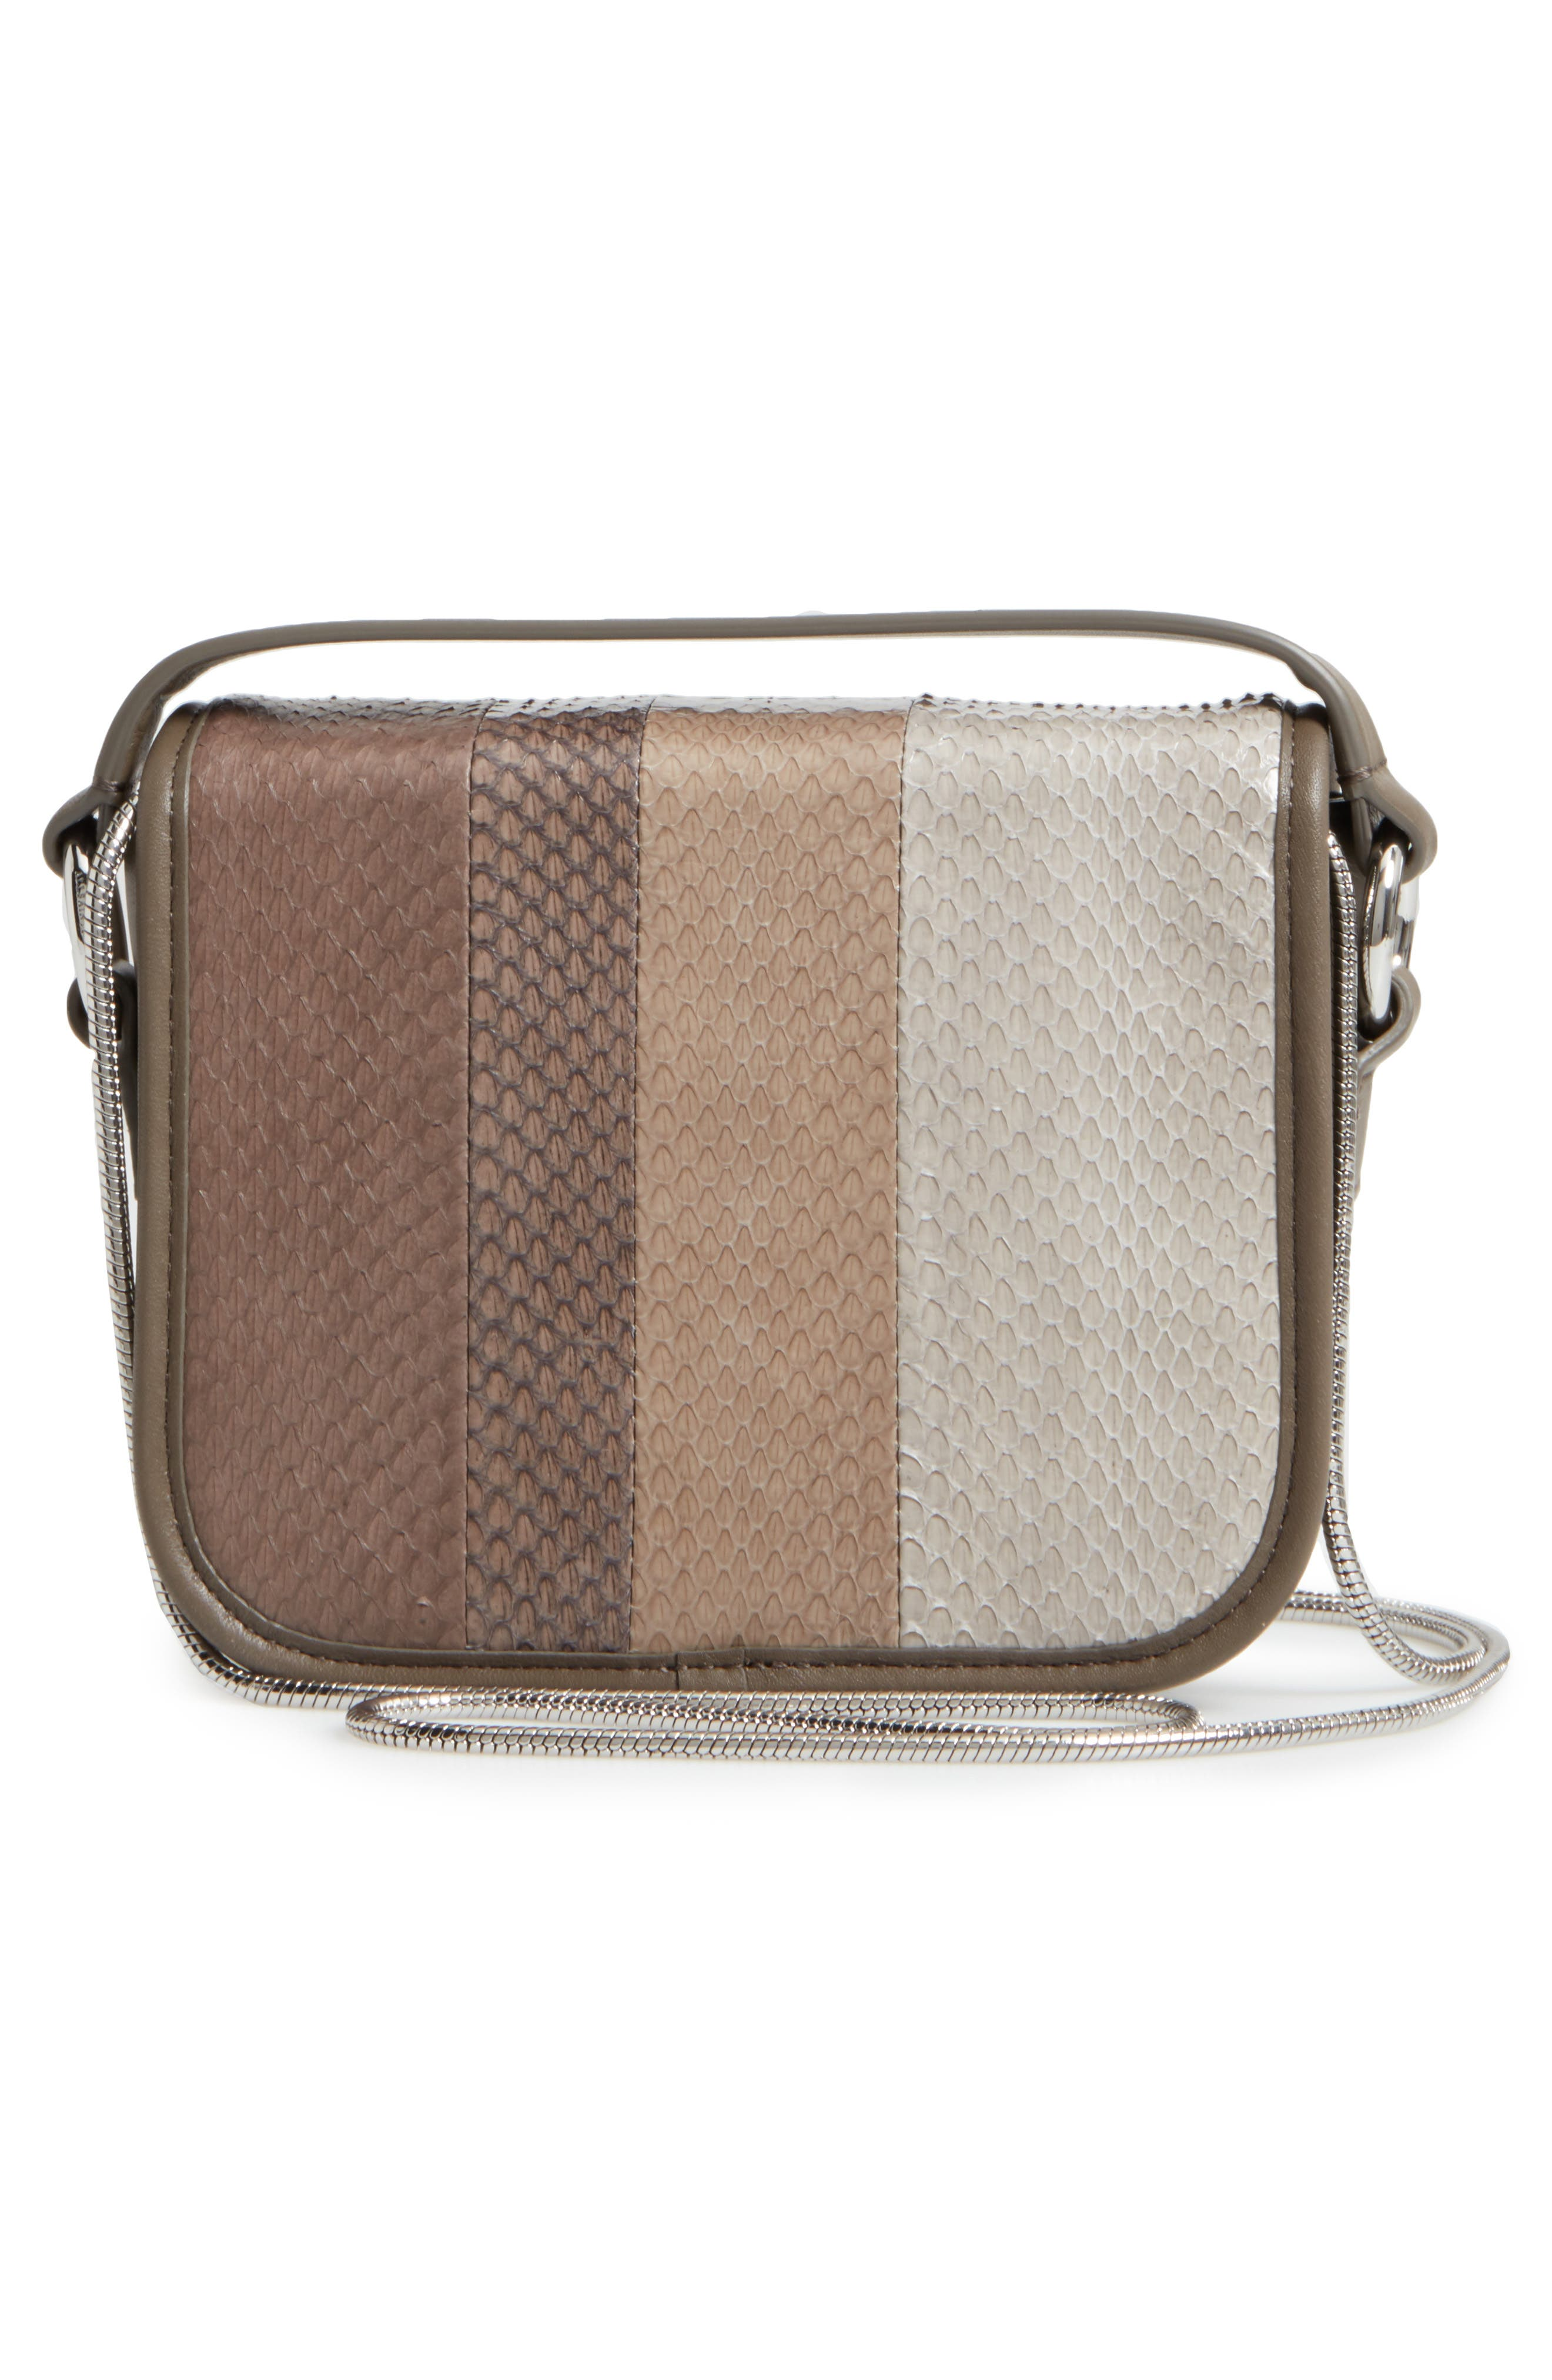 Ikuya Leather & Genuine Snakeskin Clutch,                             Alternate thumbnail 3, color,                             031